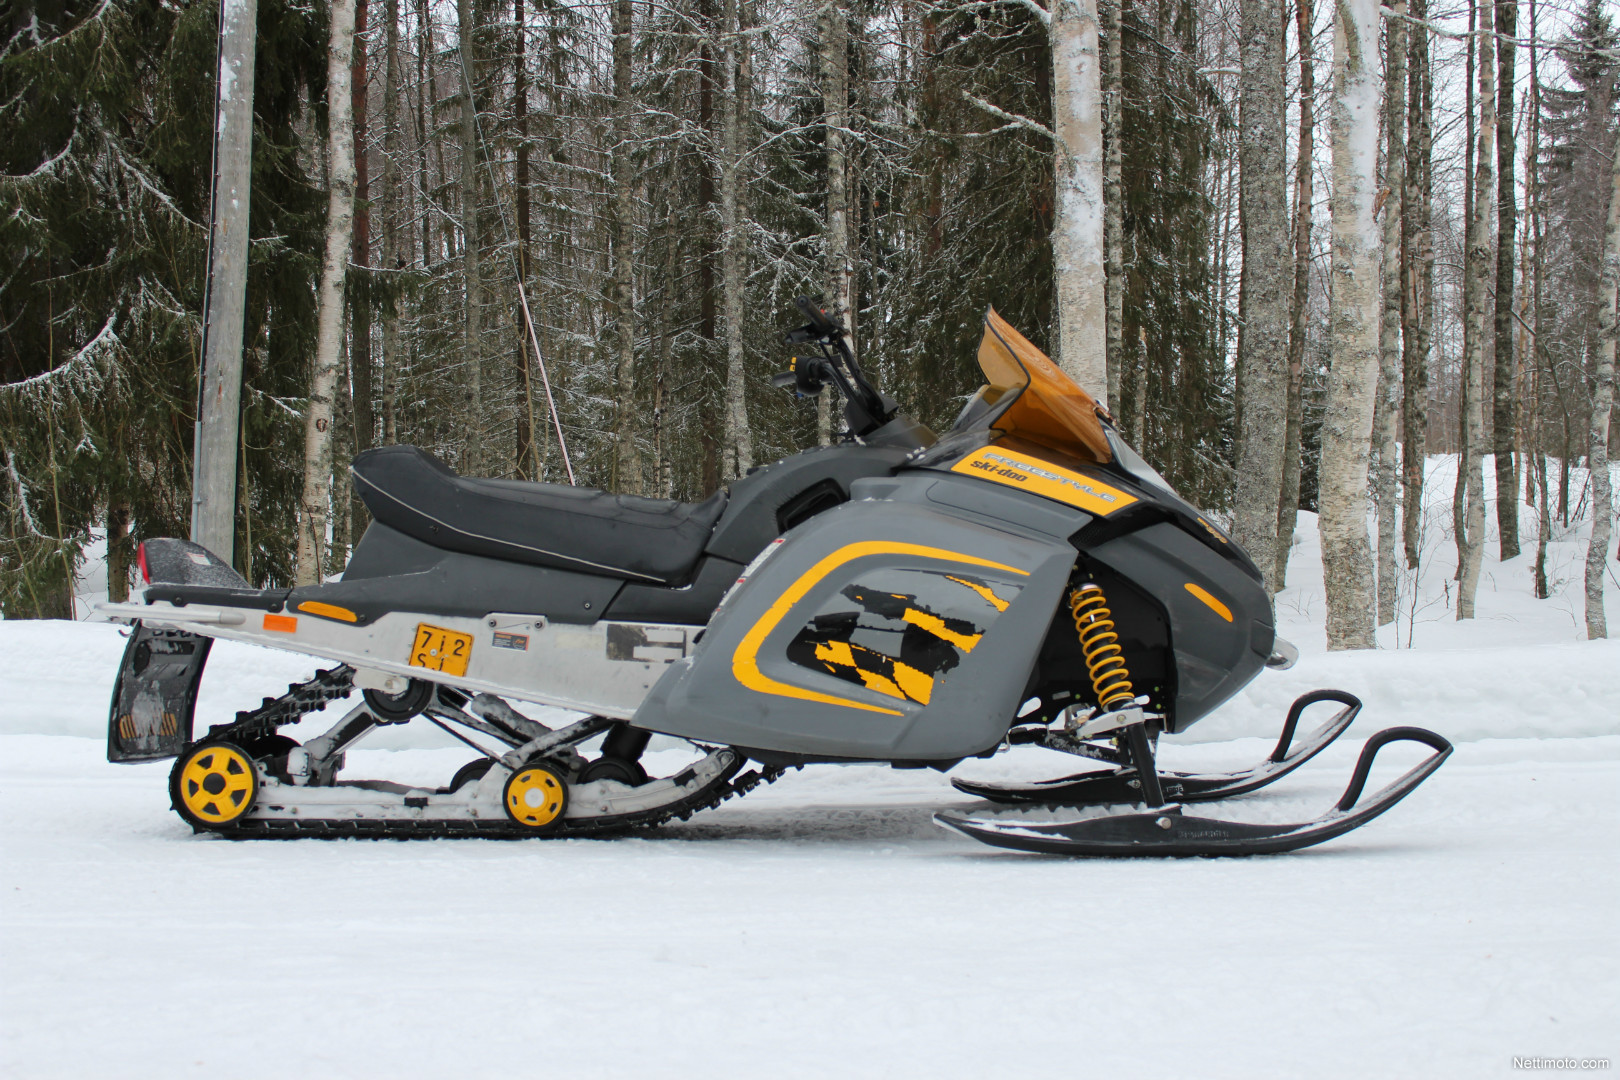 2006 Ski Doo Freestyle 300 Images - Reverse Search